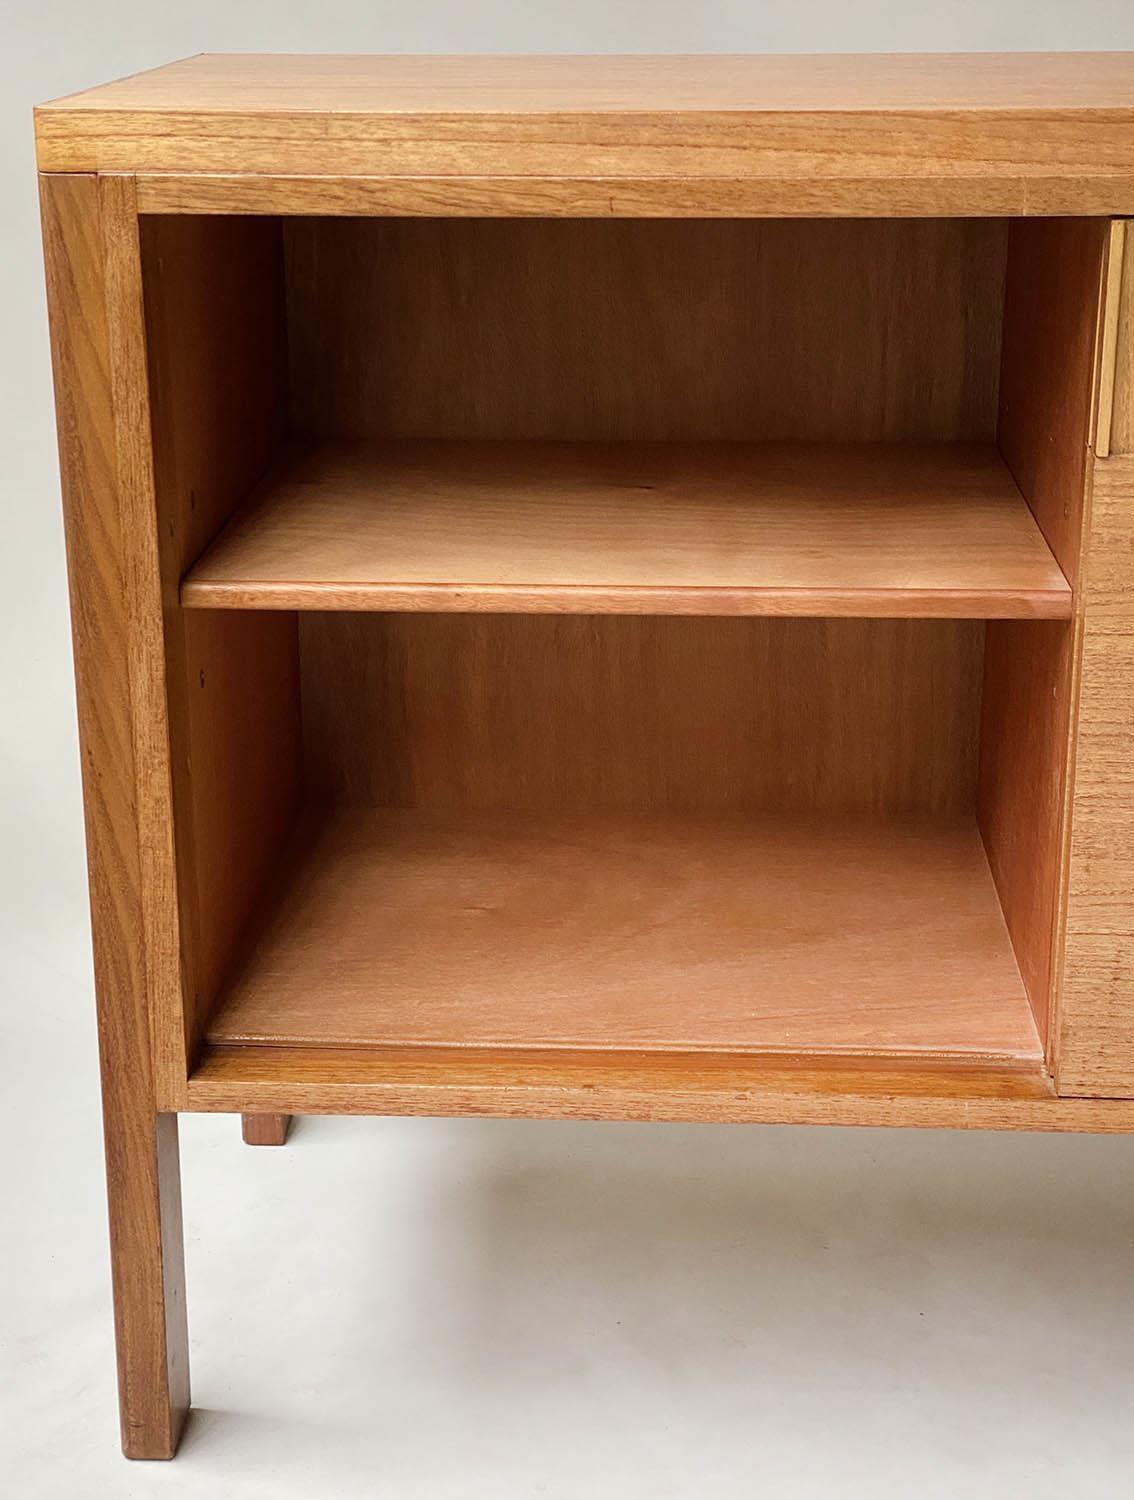 GORDON RUSSELL SIDEBOARD, 1960's walnut with two sliding doors enclosing shelves stamped Gordon - Image 6 of 8